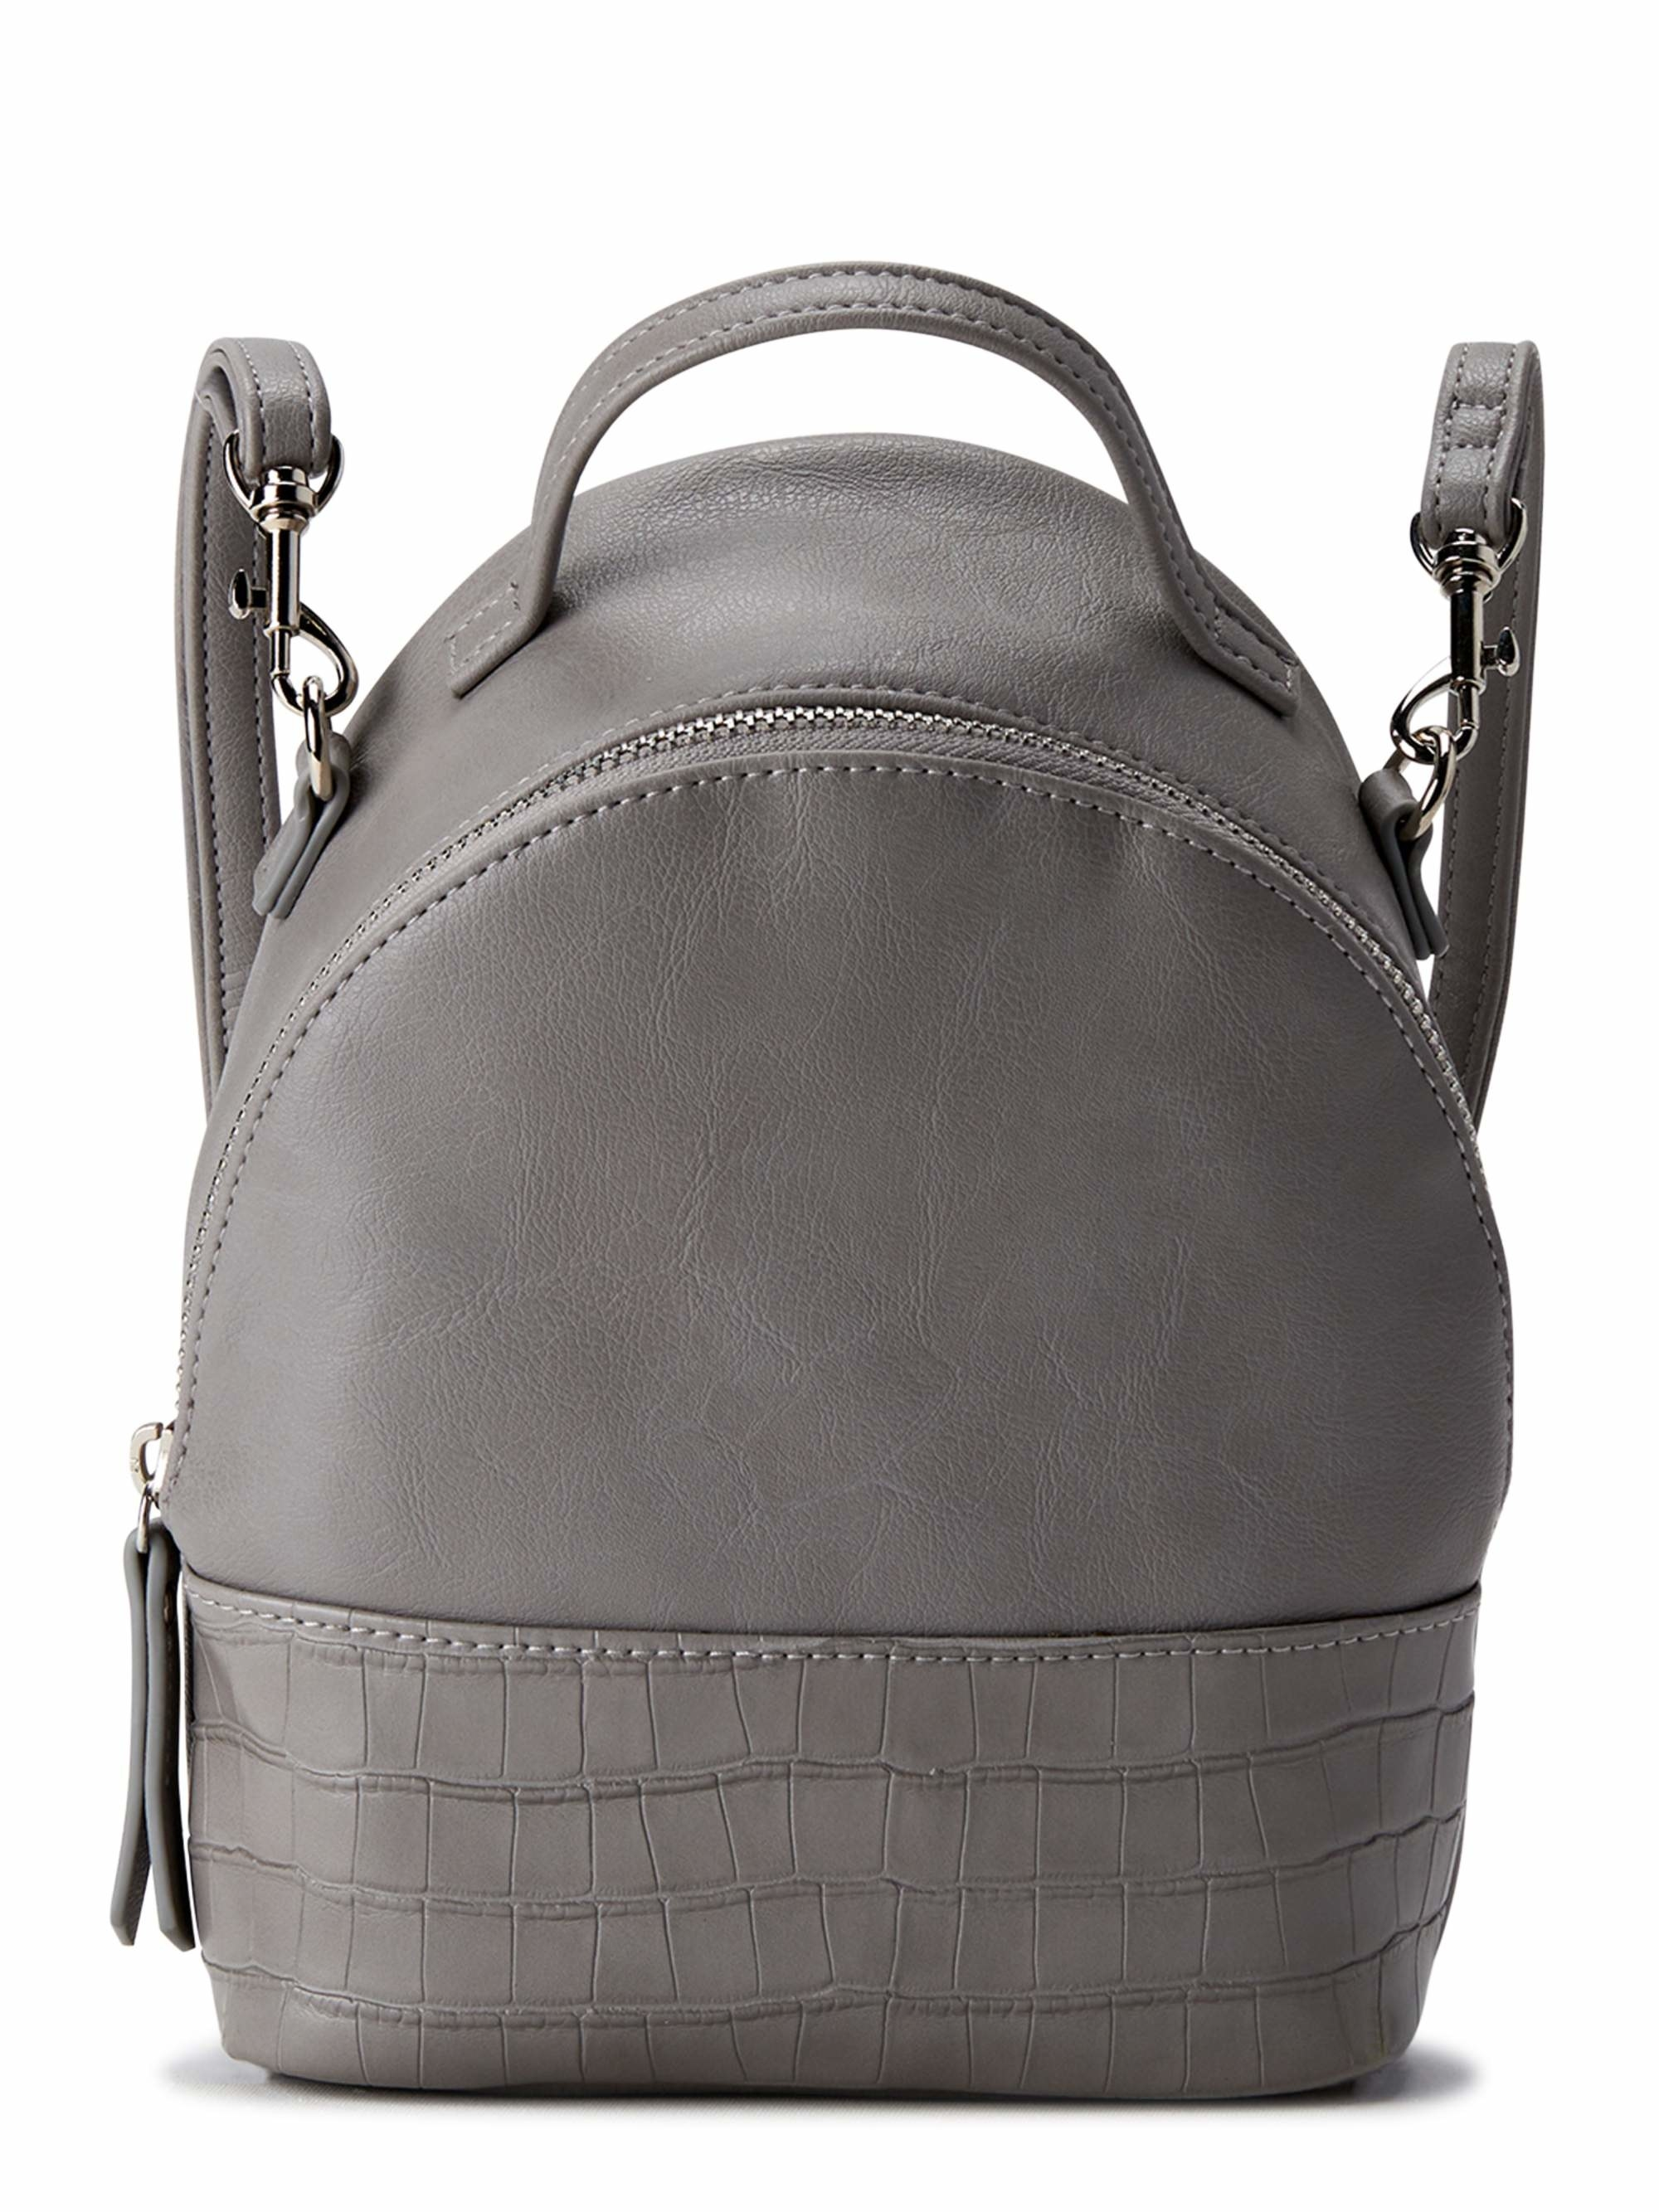 The faux leather backpack